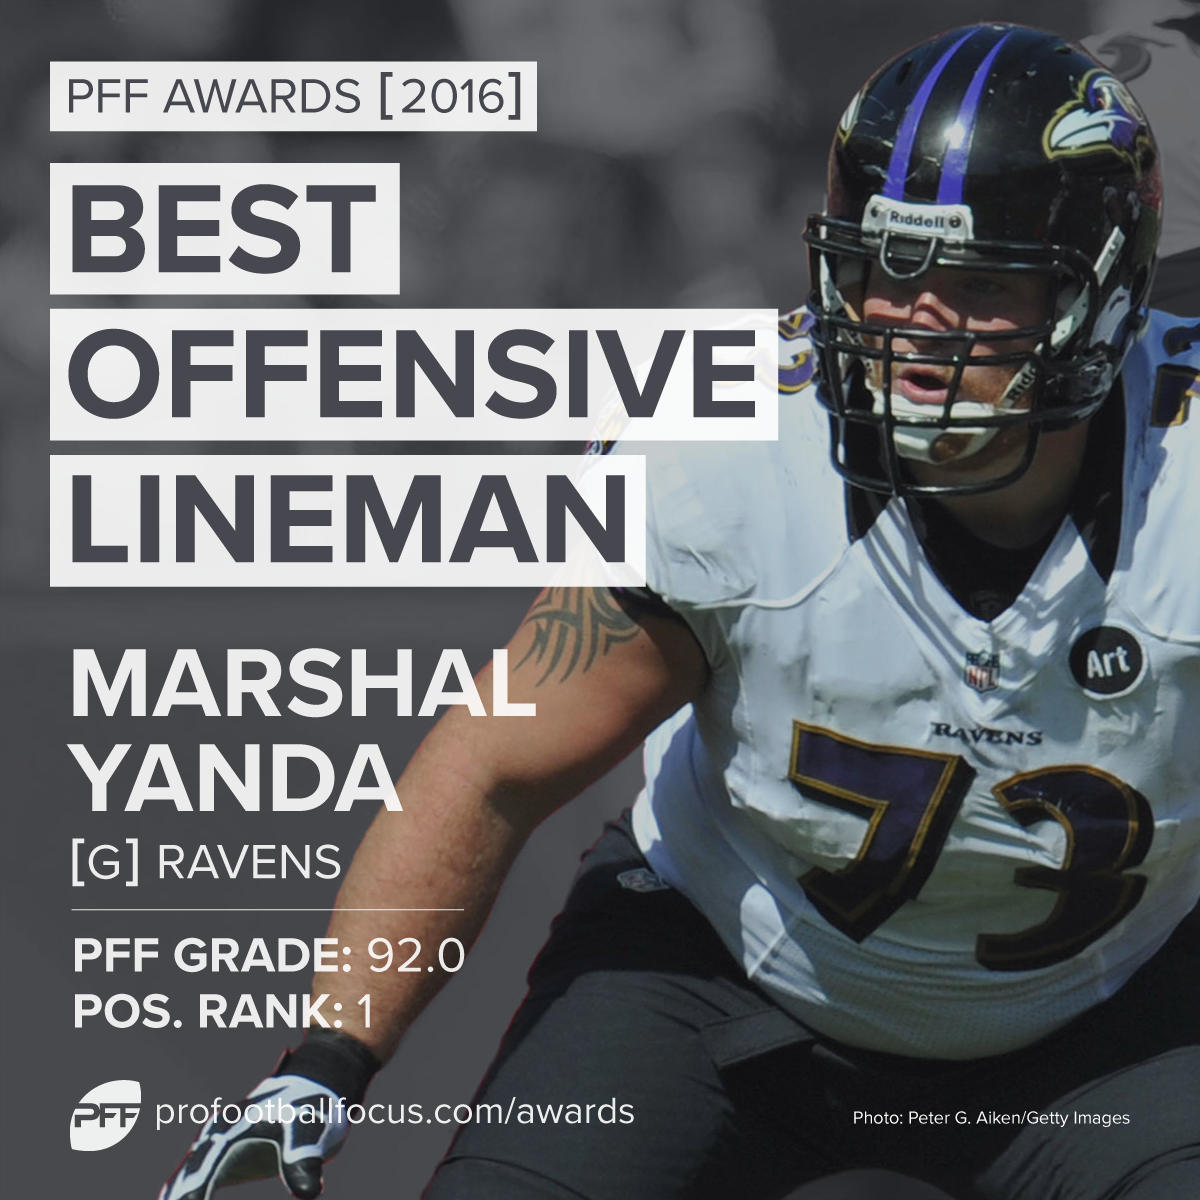 Best Offensive Lineman: Marshal Yanda